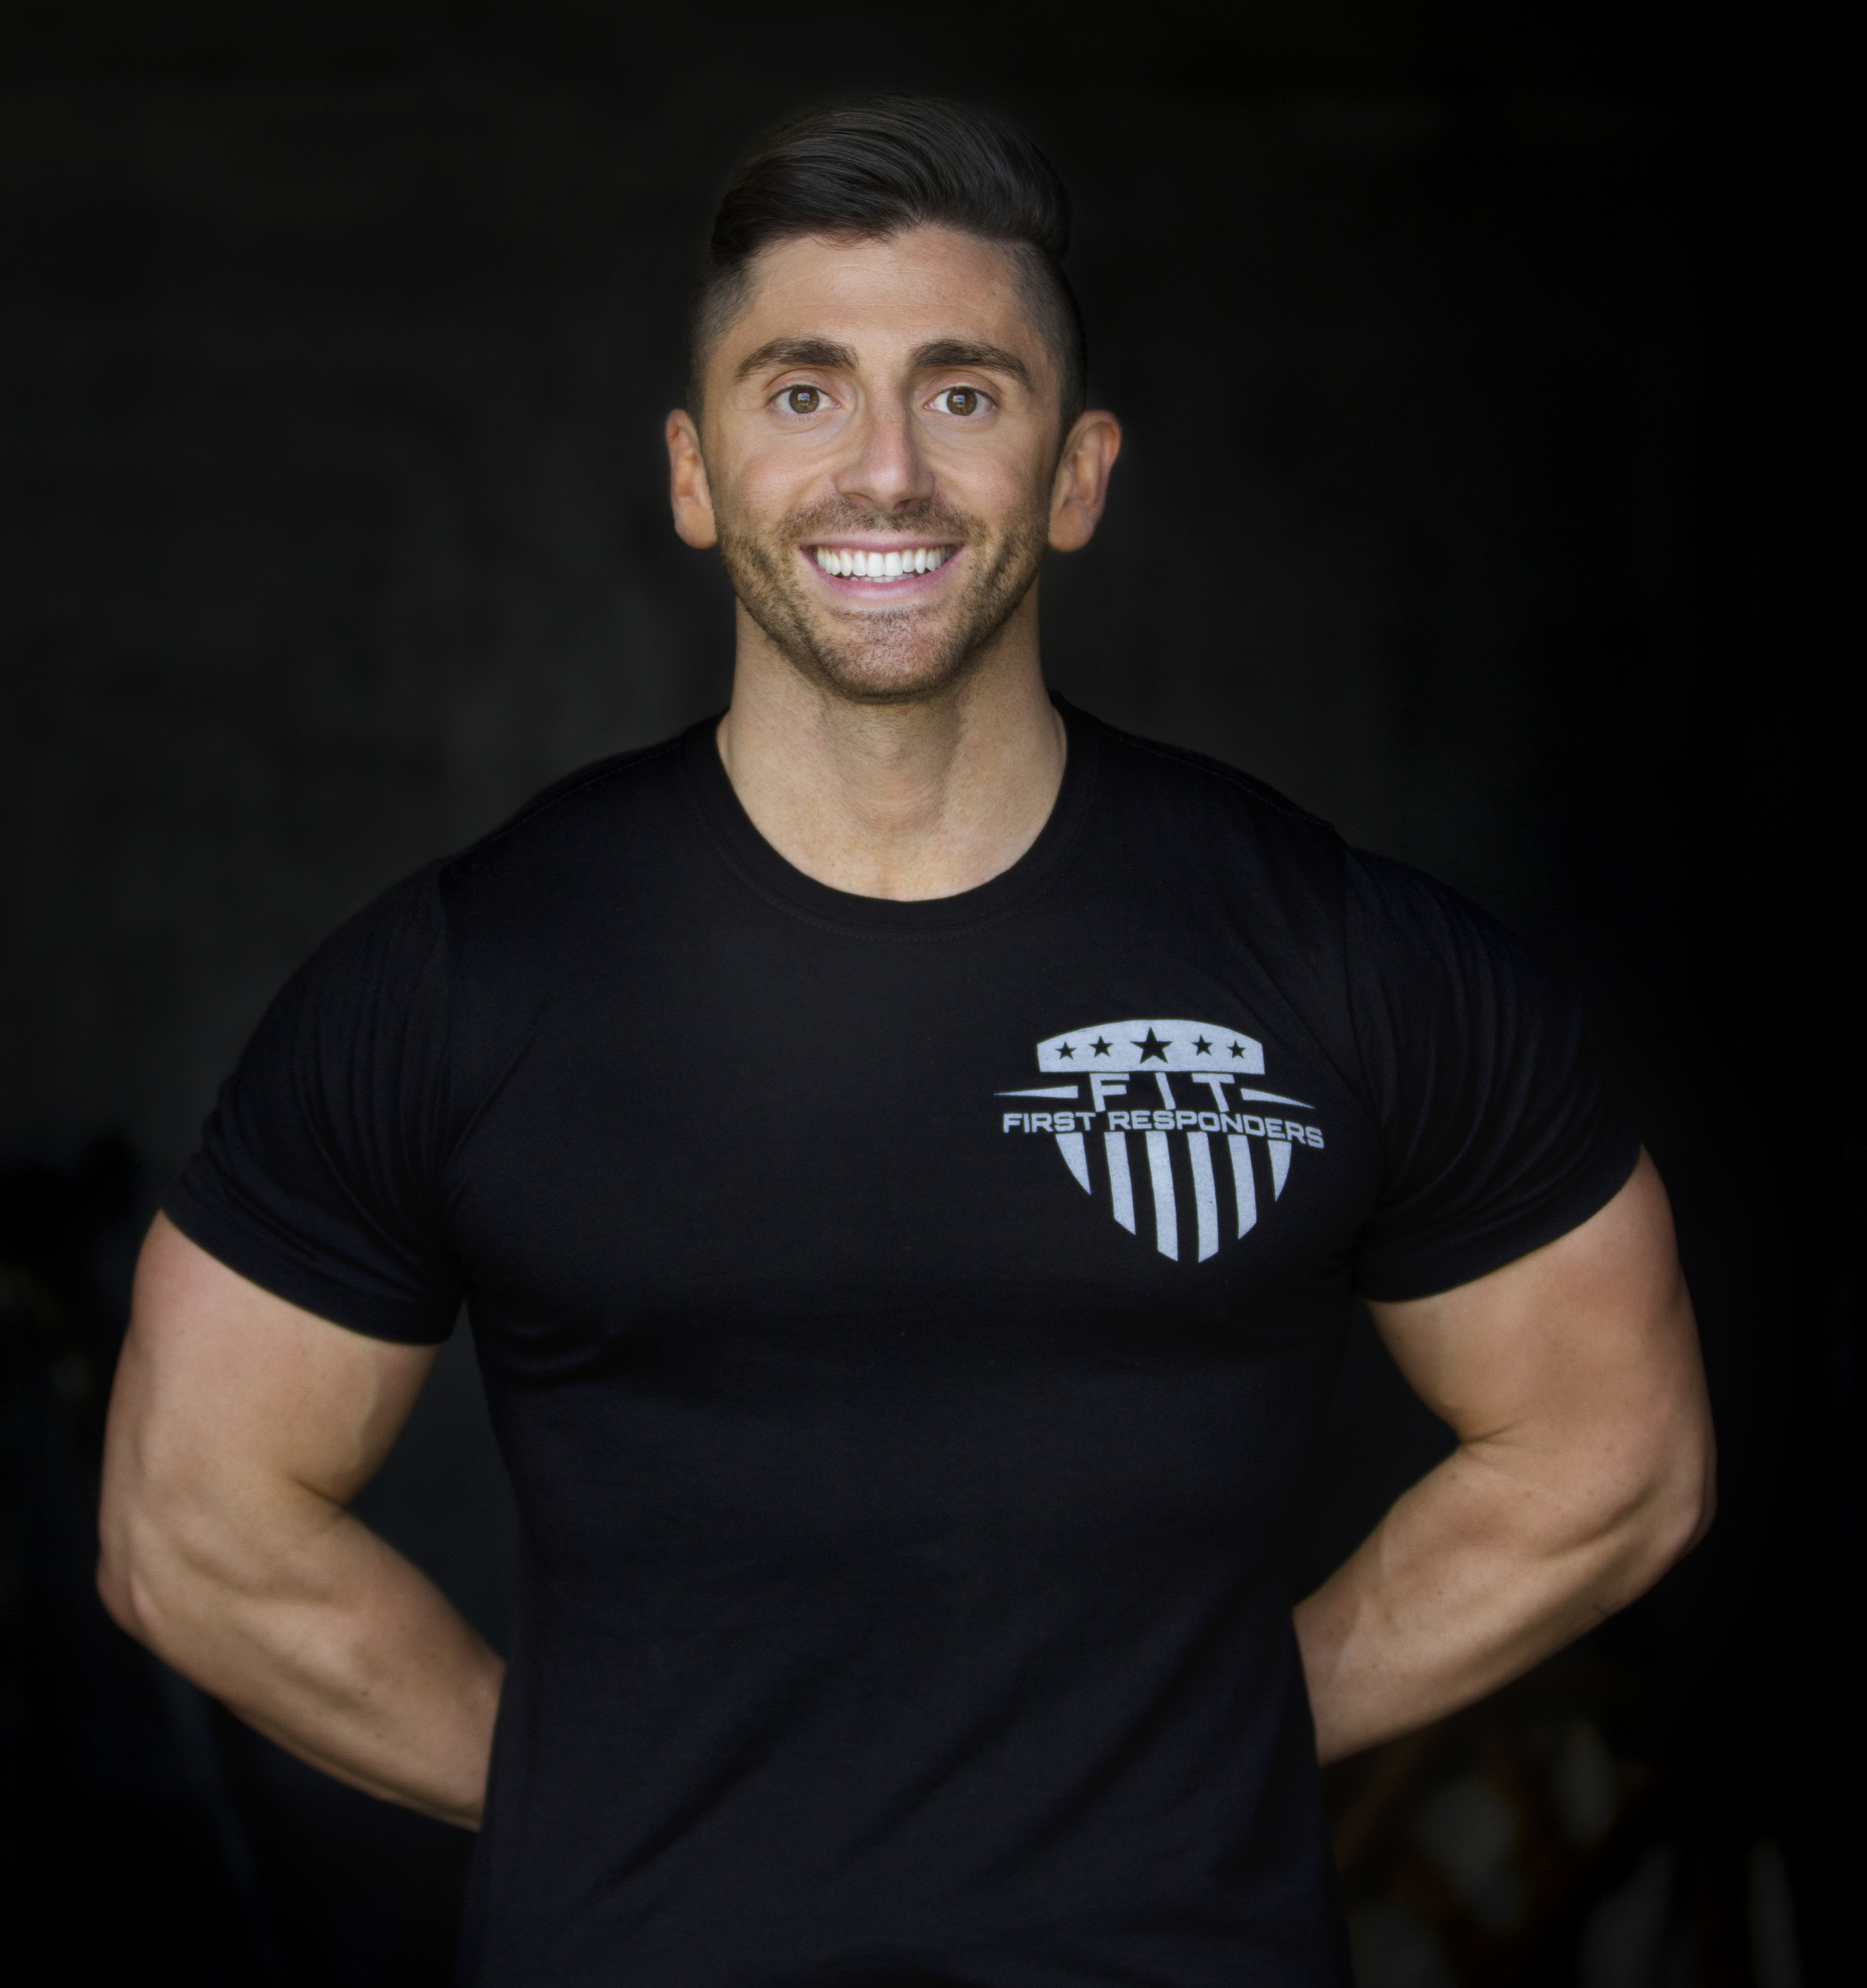 Fit First Responders Founder, Jonathan Conneely